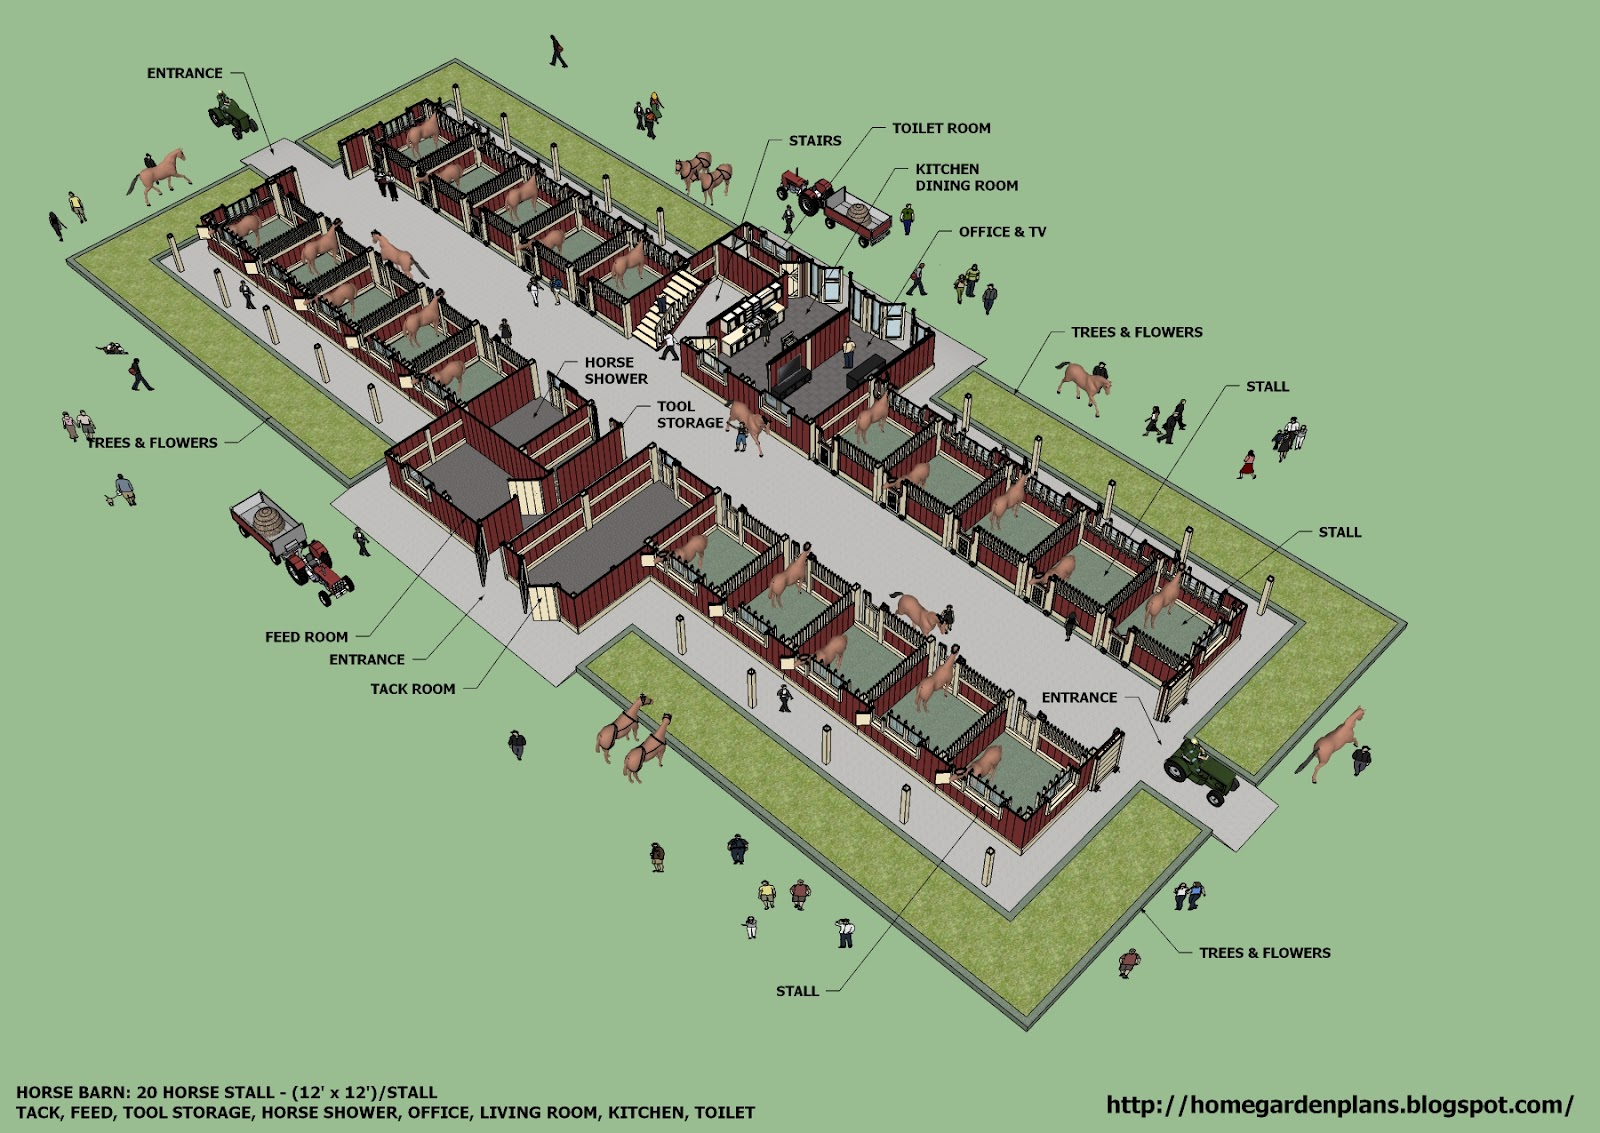 Home garden plans b20h large horse barn for 20 horse for 10 stall horse barn floor plans